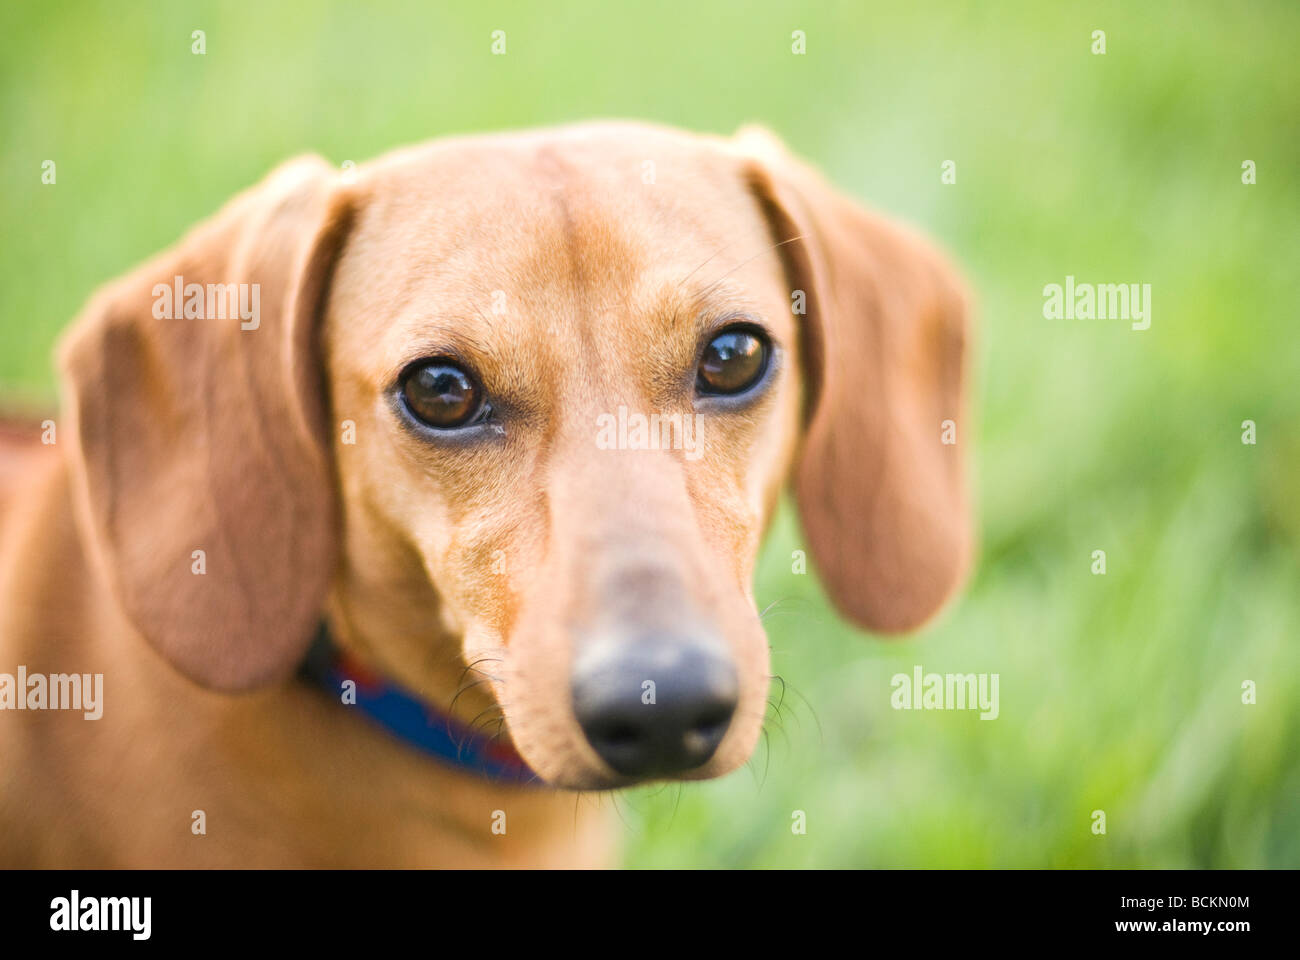 portrait of dachshund dog - Stock Image